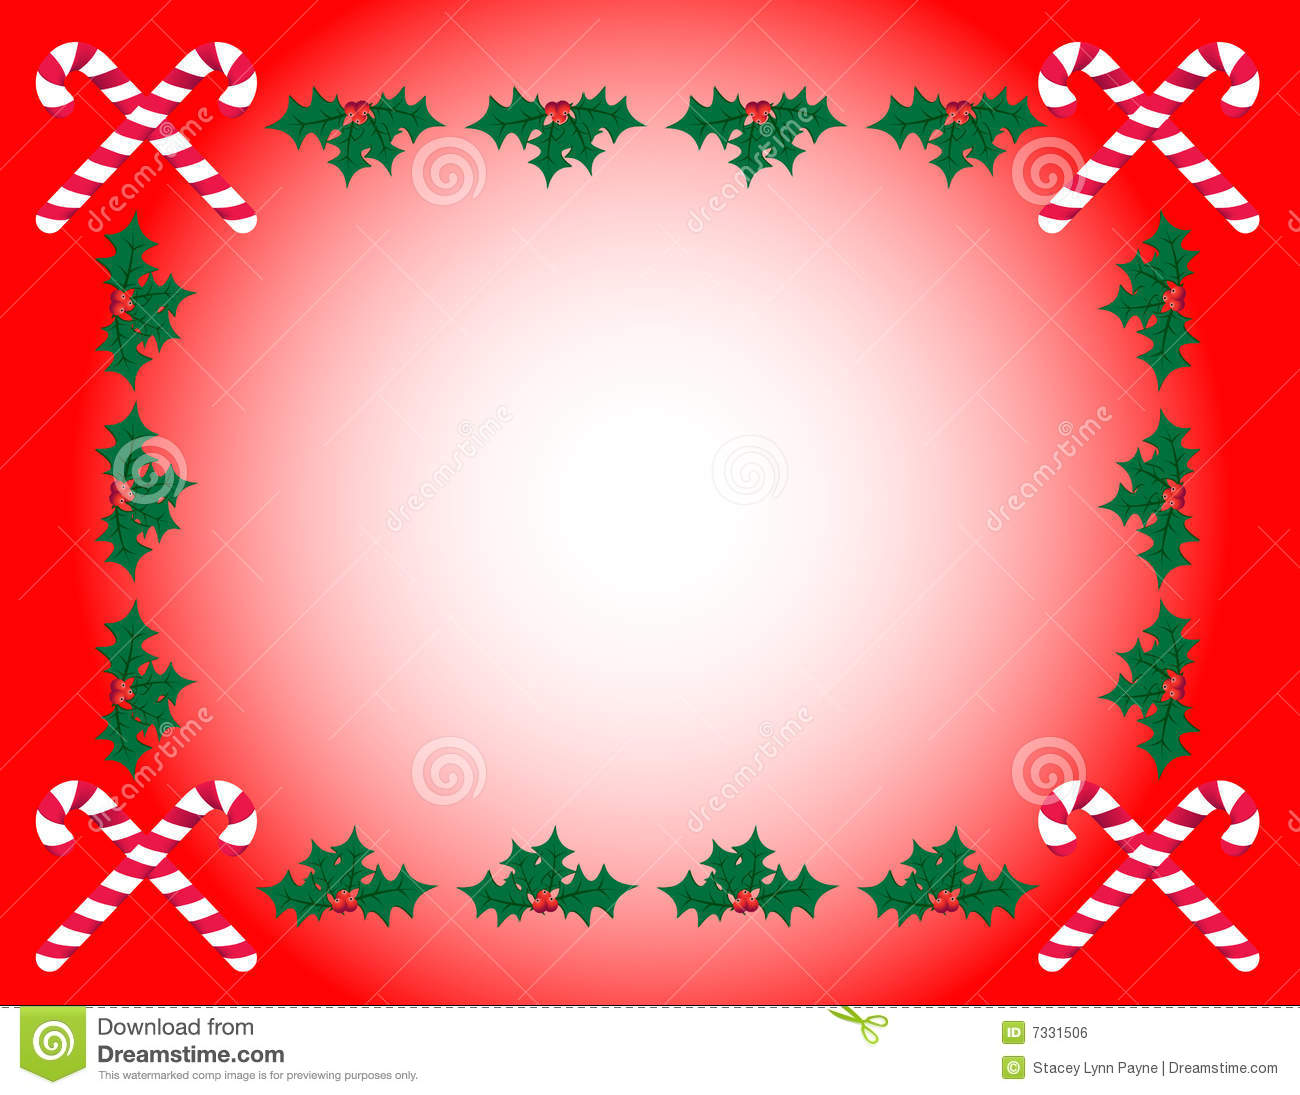 Candy Cane Amp Holly Frame Stock Vector Illustration Of